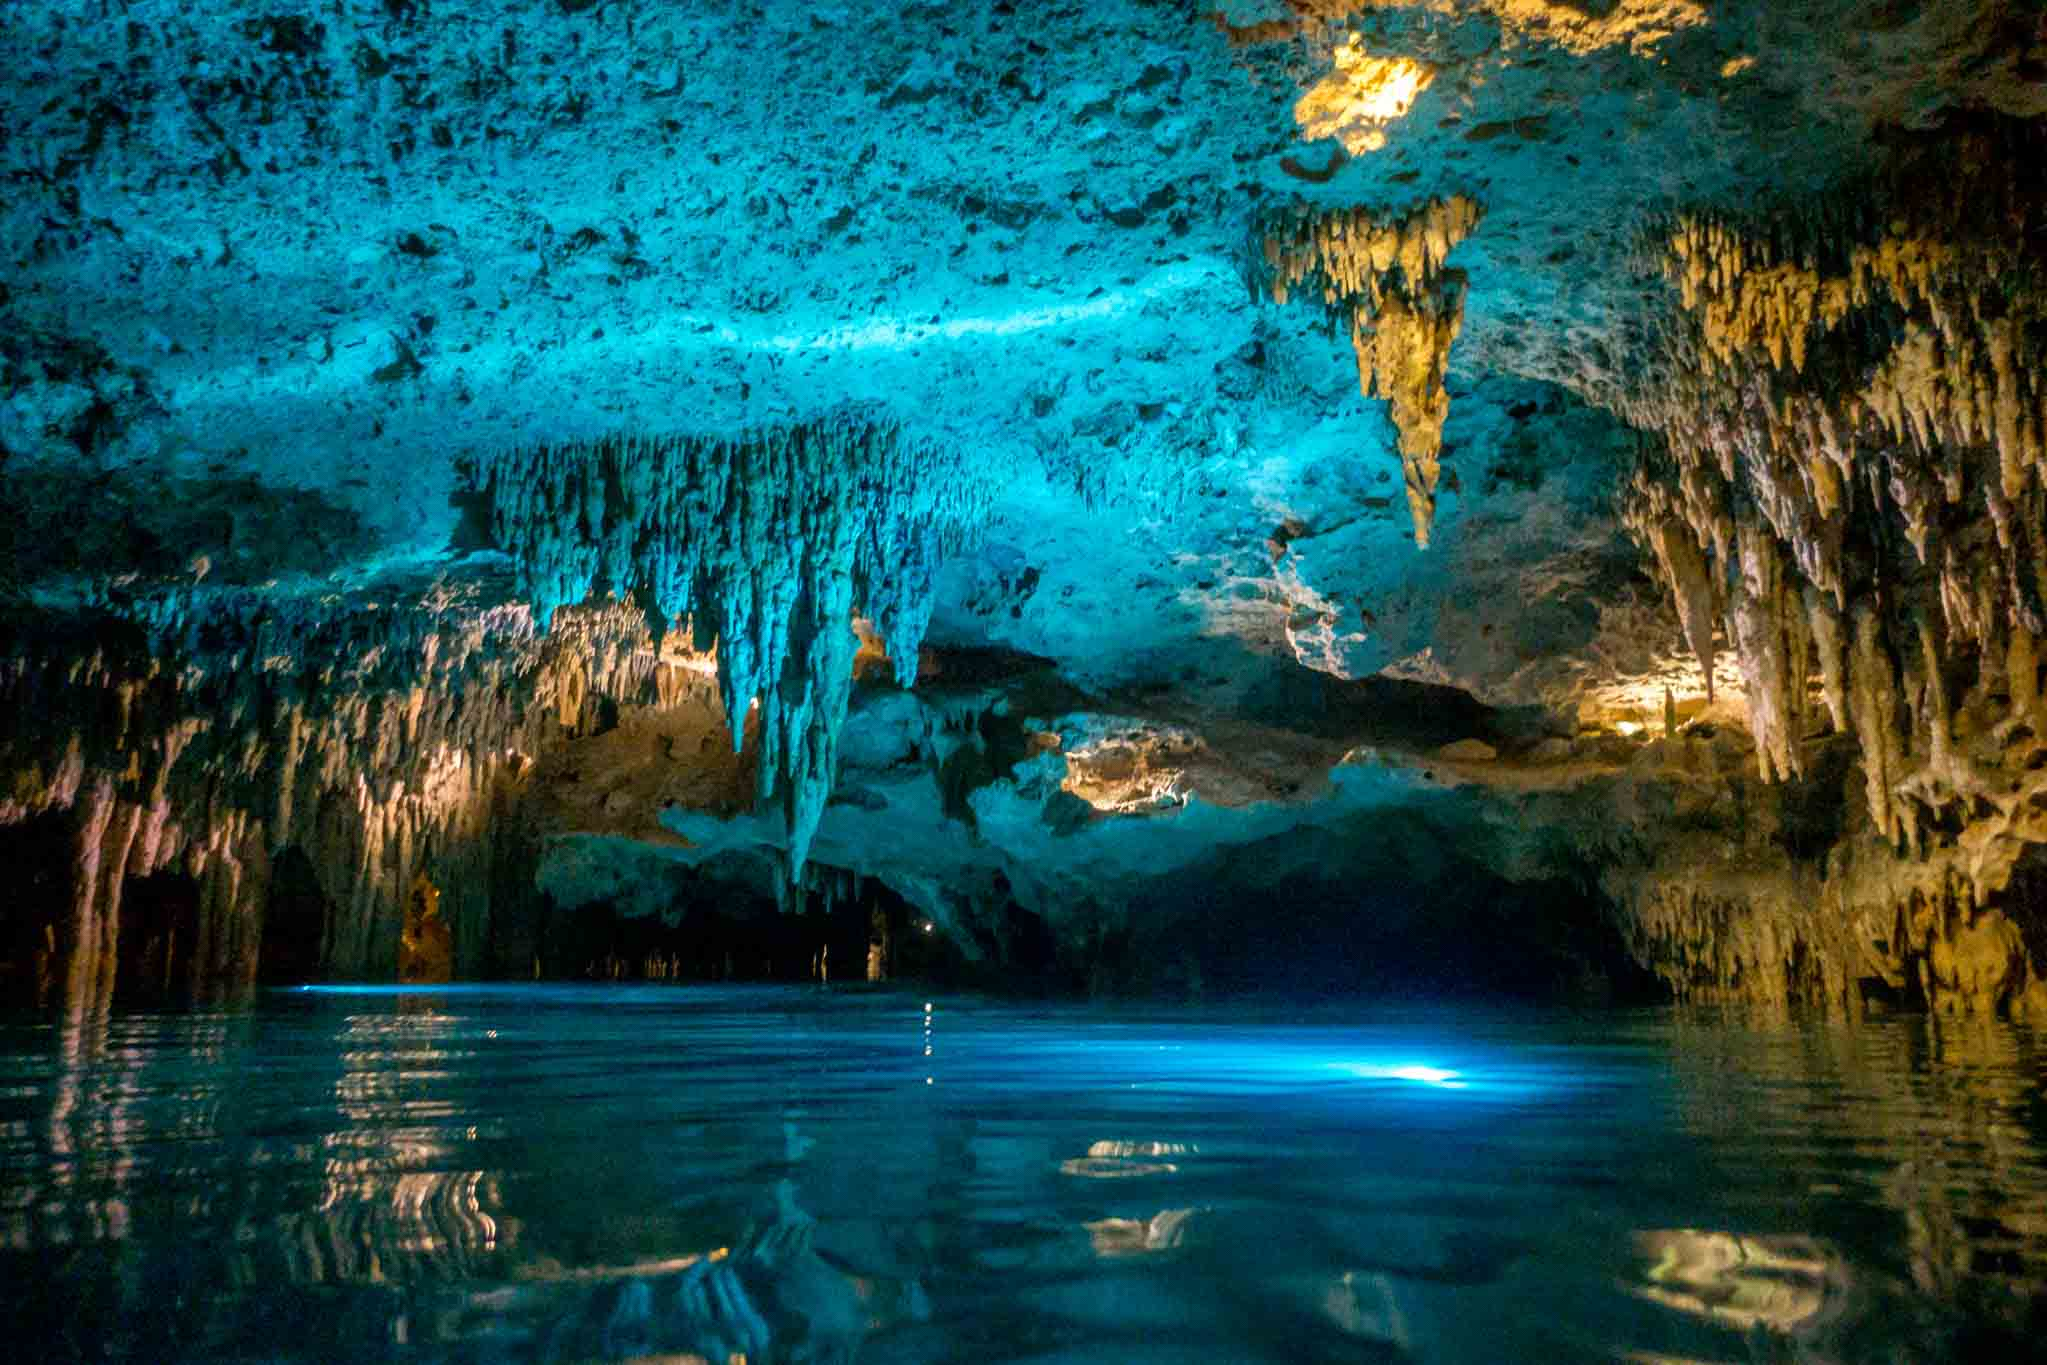 Underground river lit up with blue light